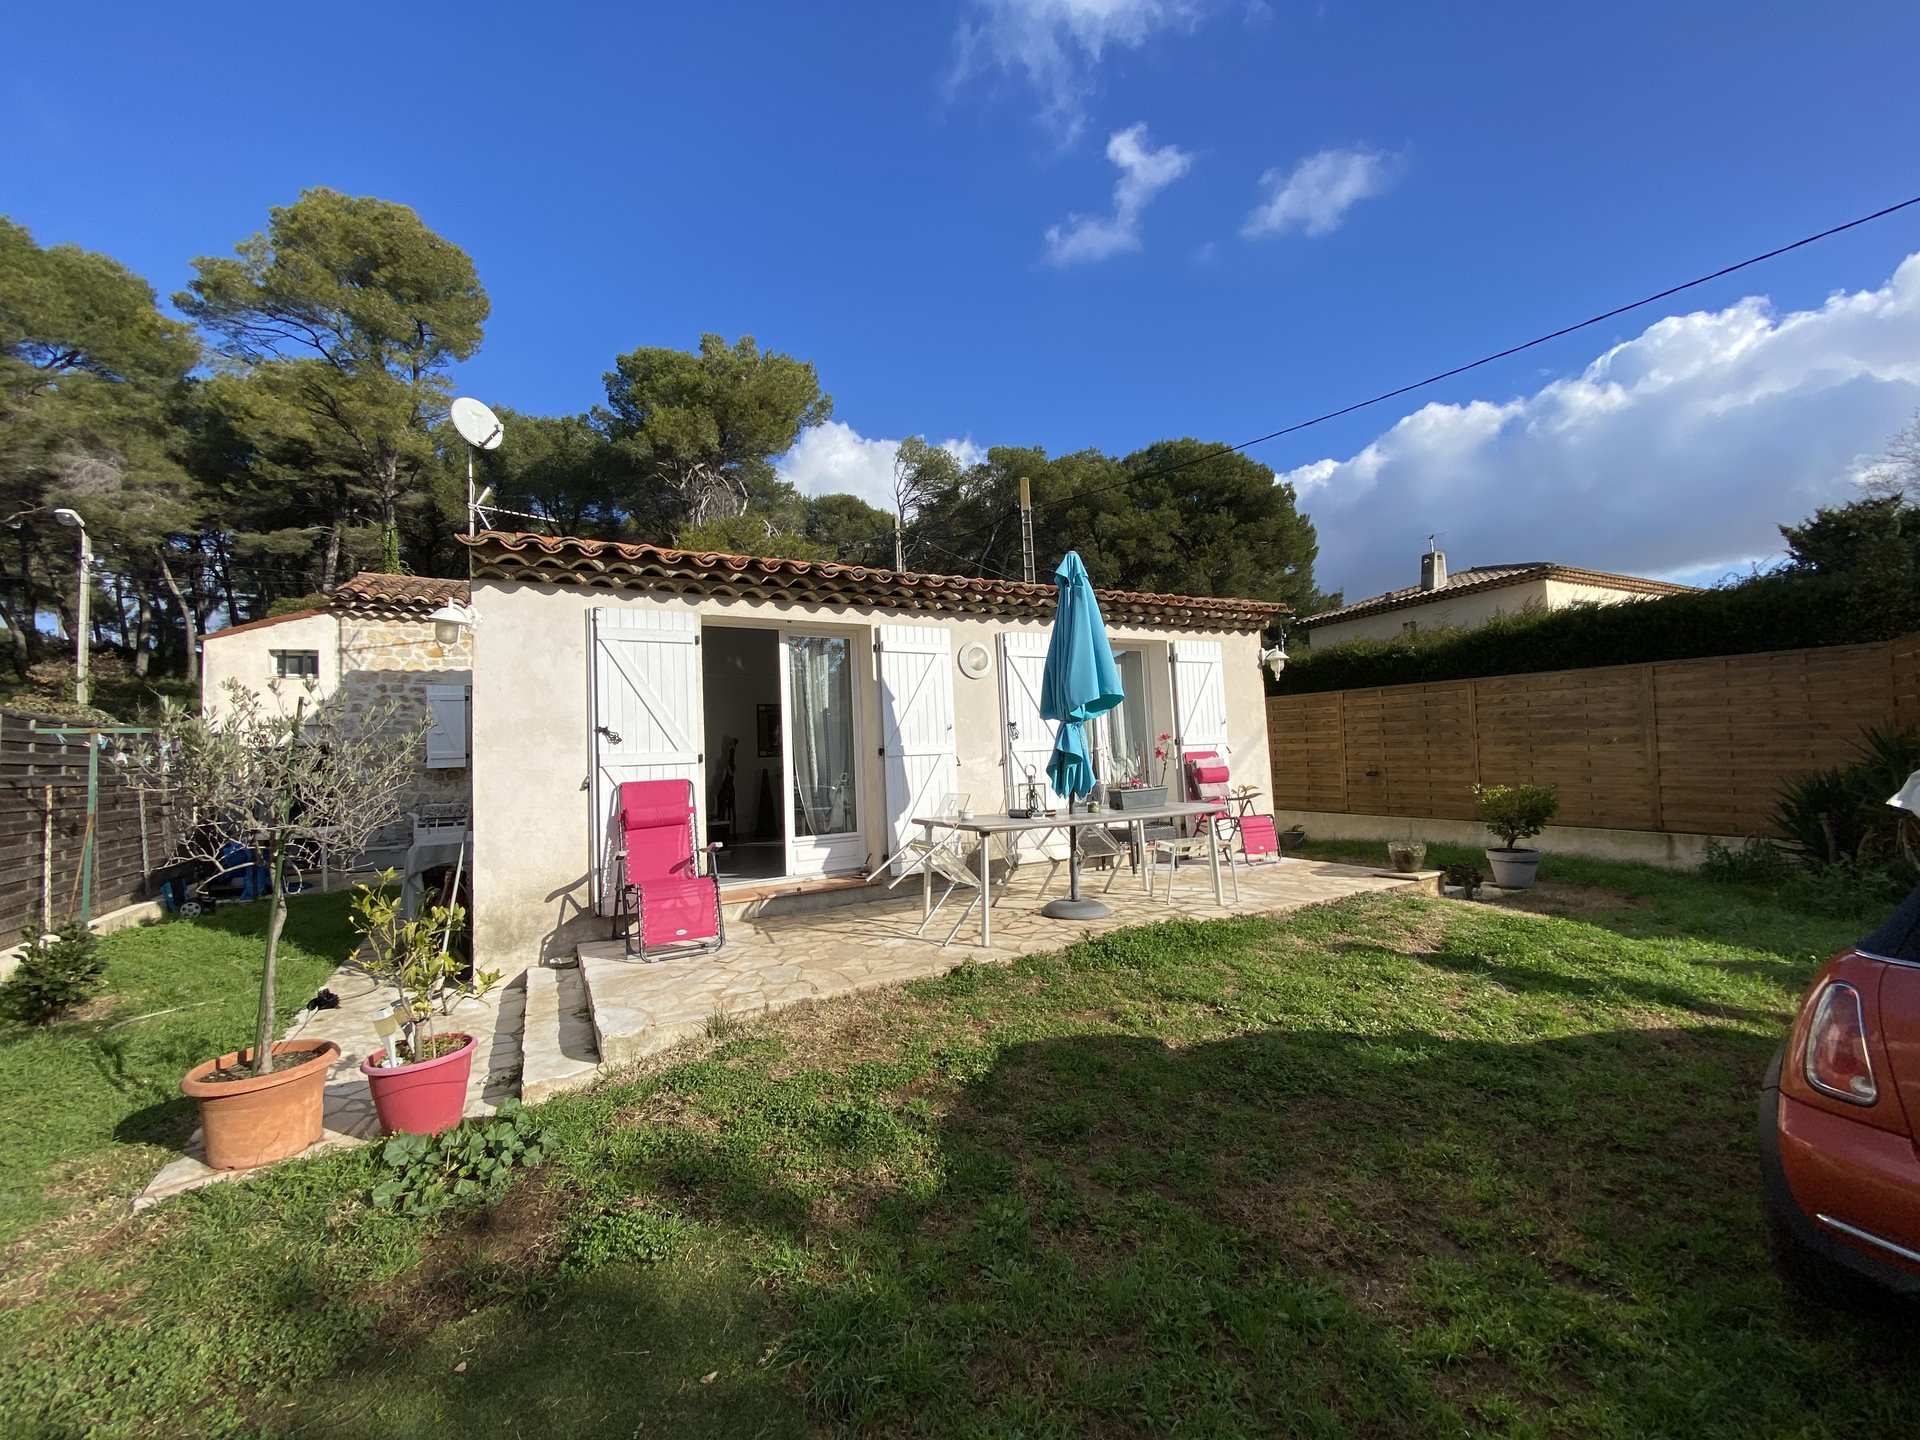 LE CANNET, 15 mn to CANNES, VILLA FOR SALE